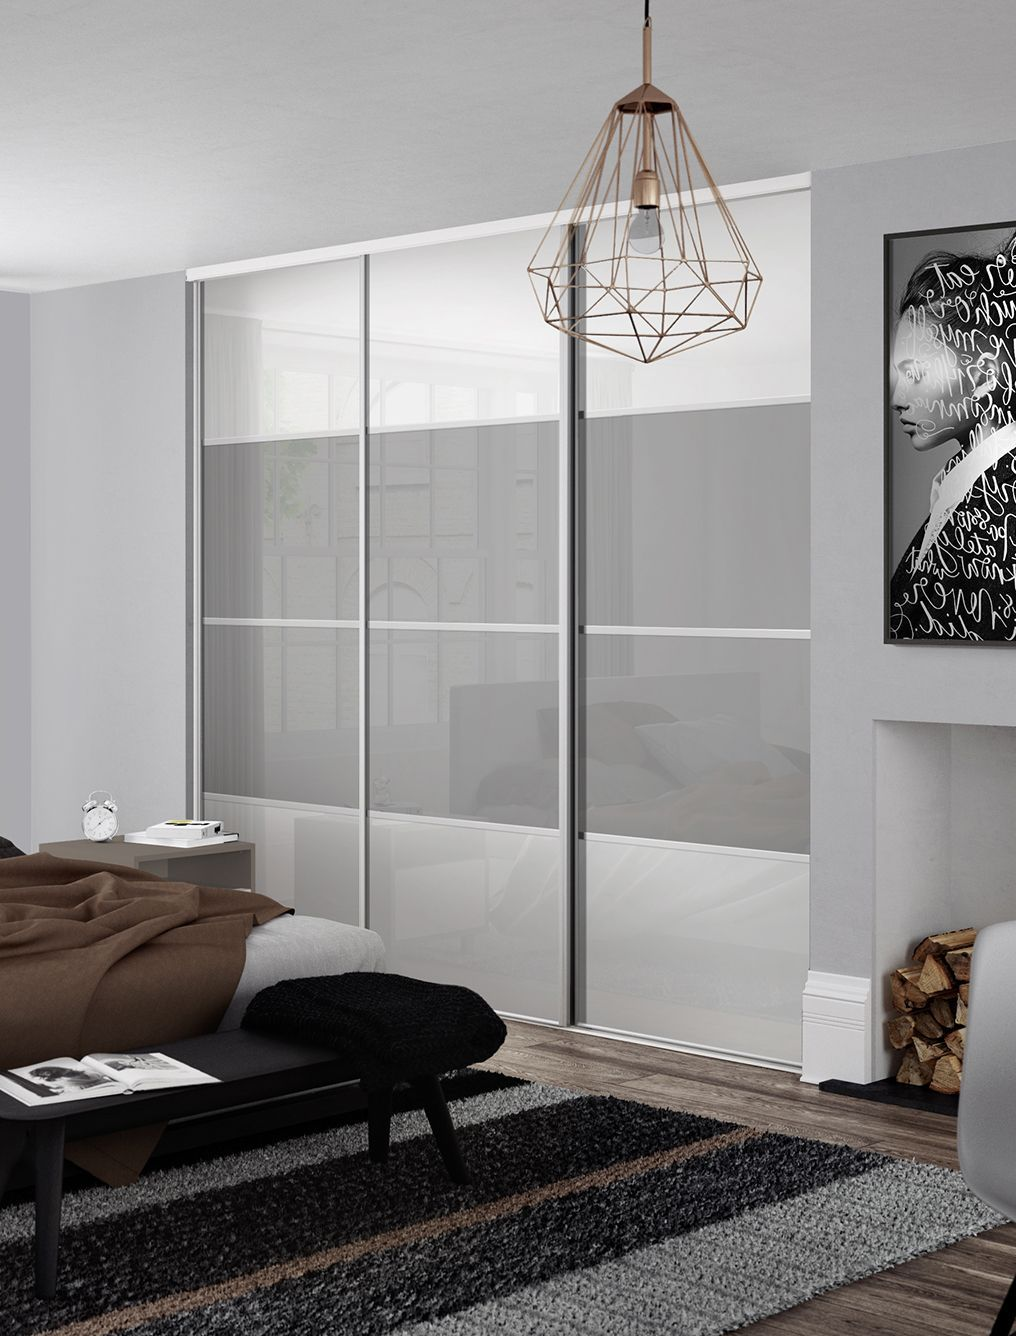 Classic 4 Panel Sliding Wardrobe Doors In Pure White And Light Grey